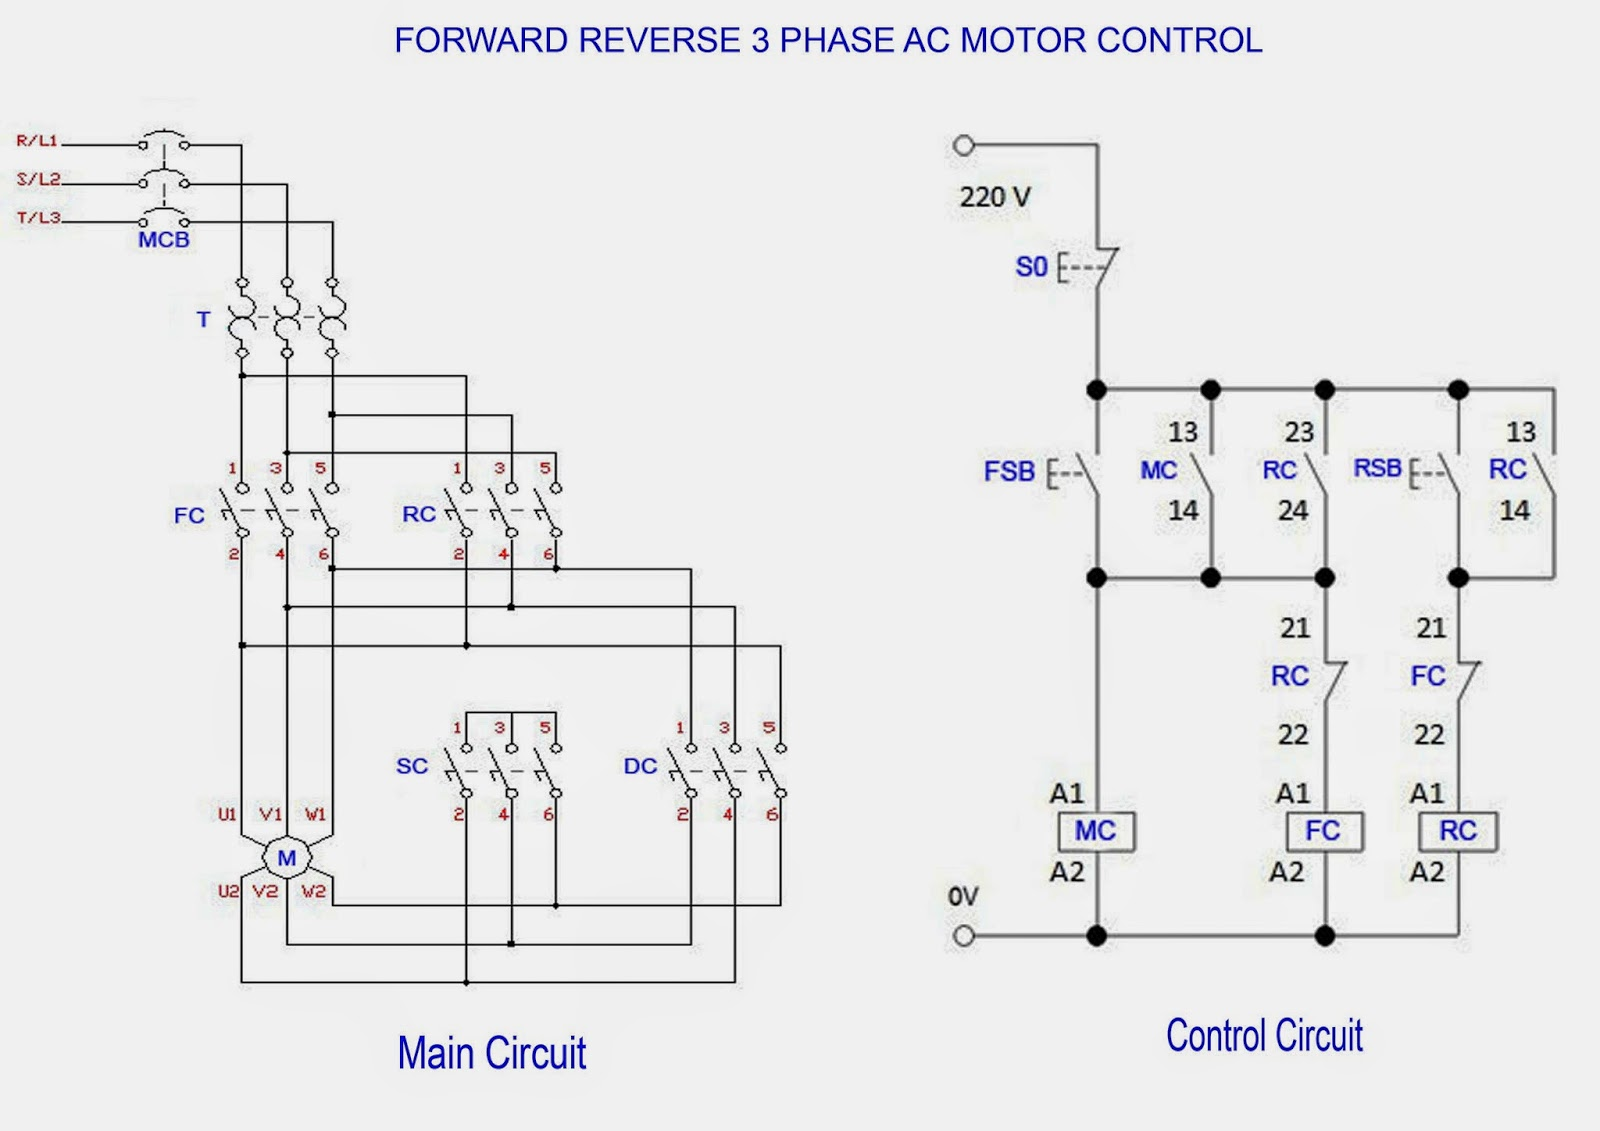 3 Phase Motor Control Panel Wiring Diagram Complement Of A Set Venn Forward Reverse Ac Star Delta